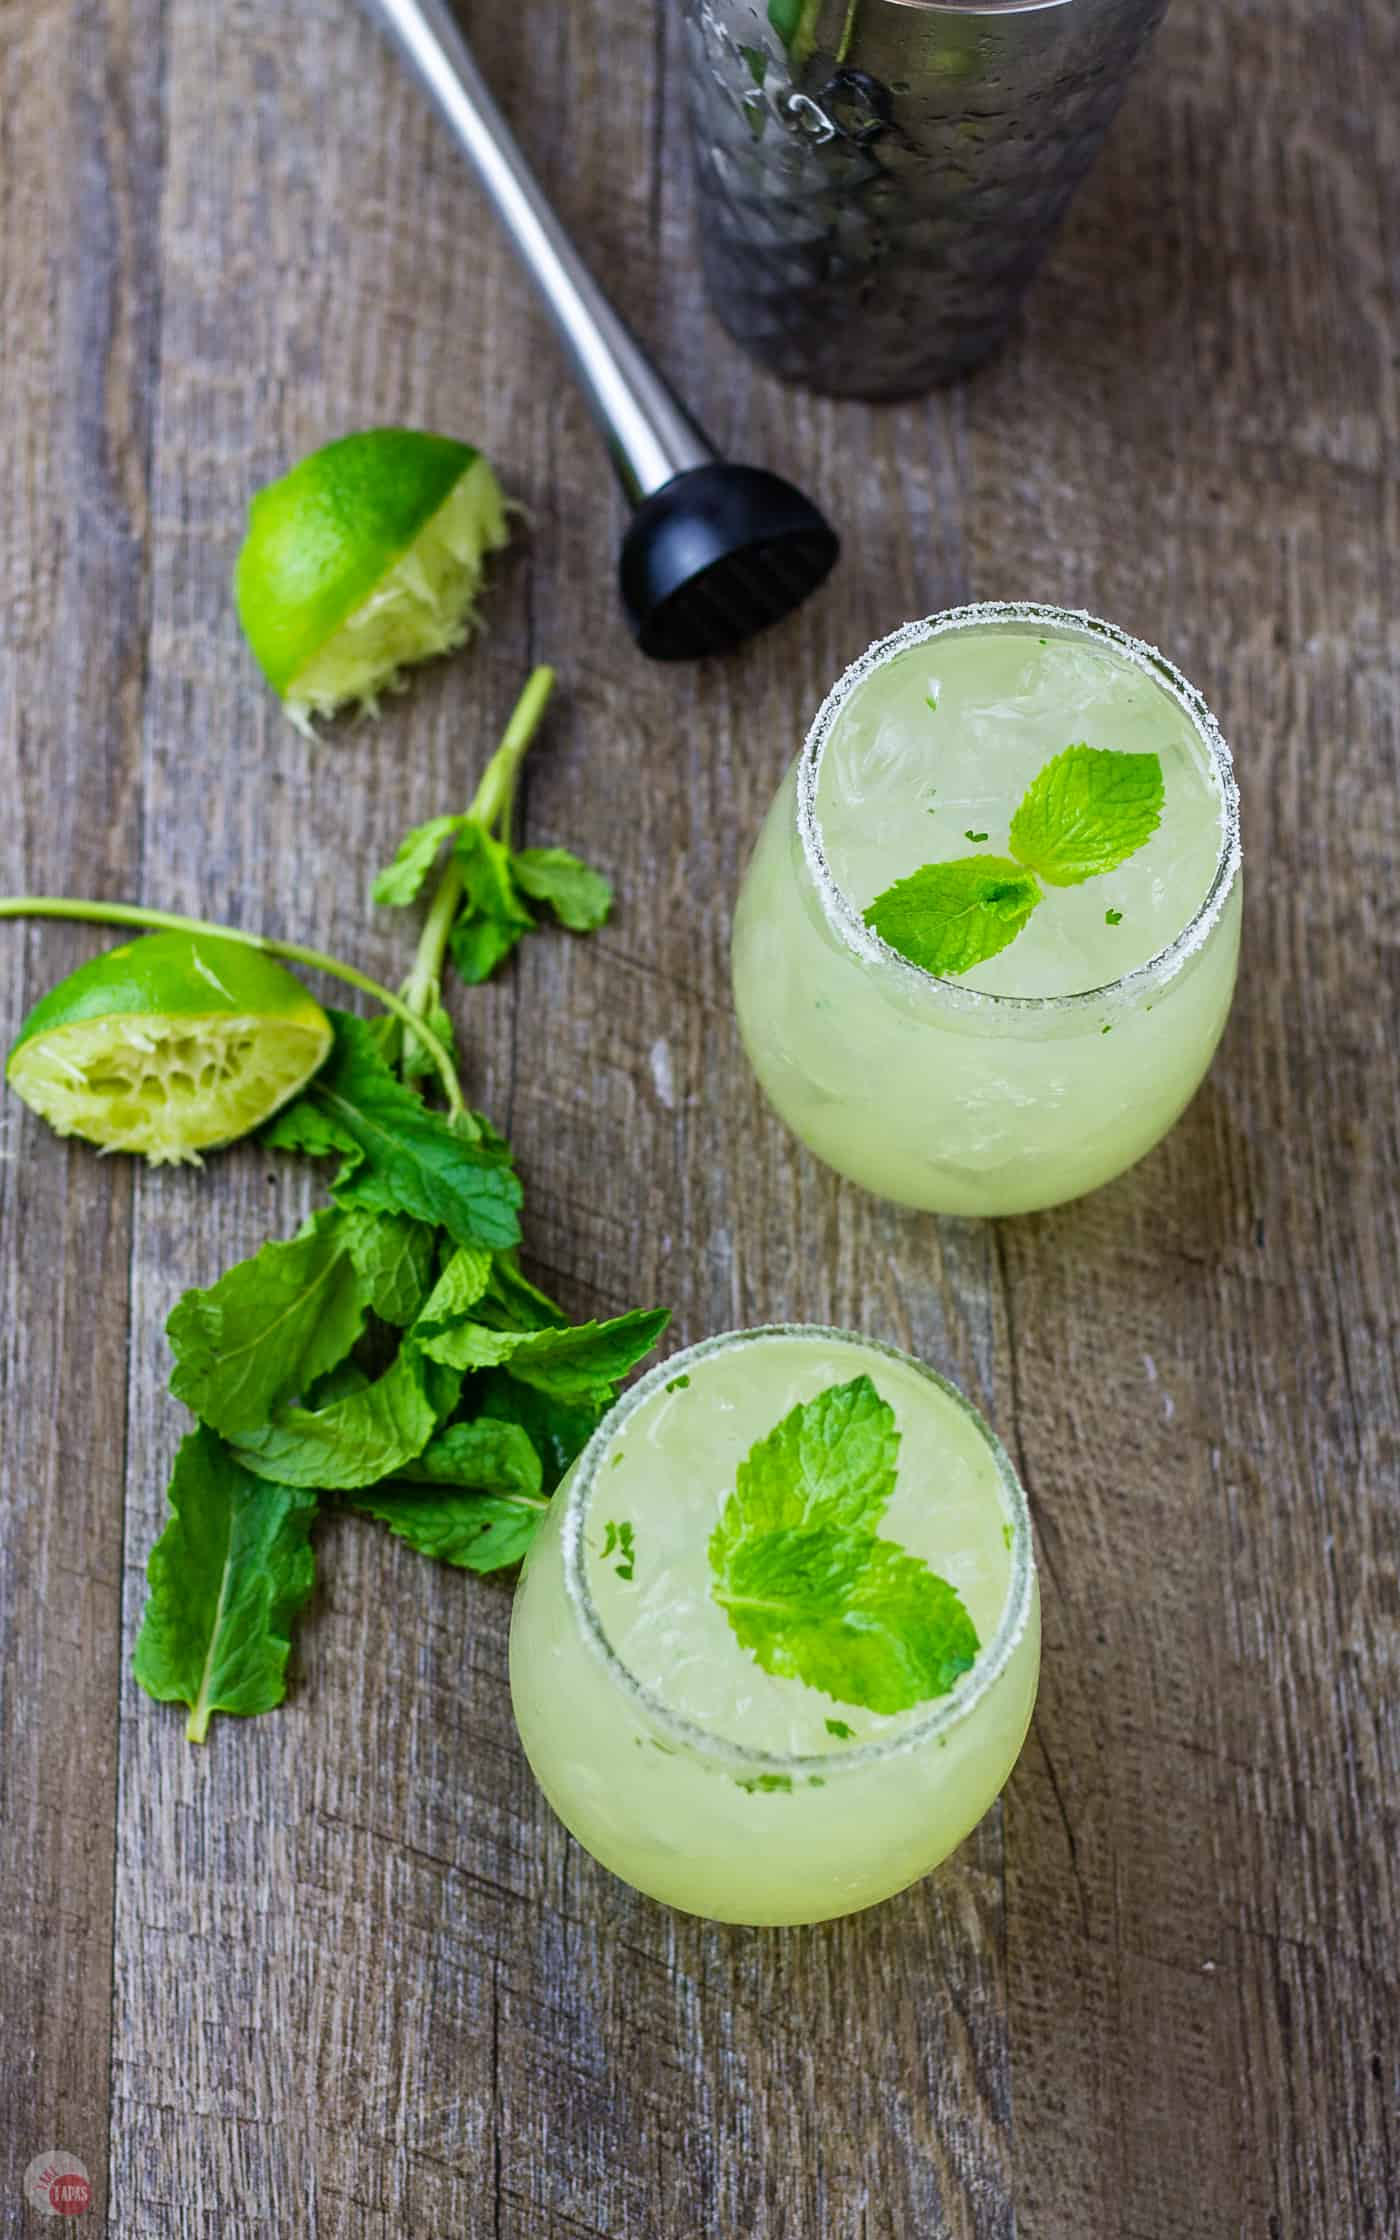 Make a Mariachi Mash for you and your guest! | Take Two Tapas | #Limoncello #Lime #Tequila #Cocktails #SummerEntertaining #EasyCocktails